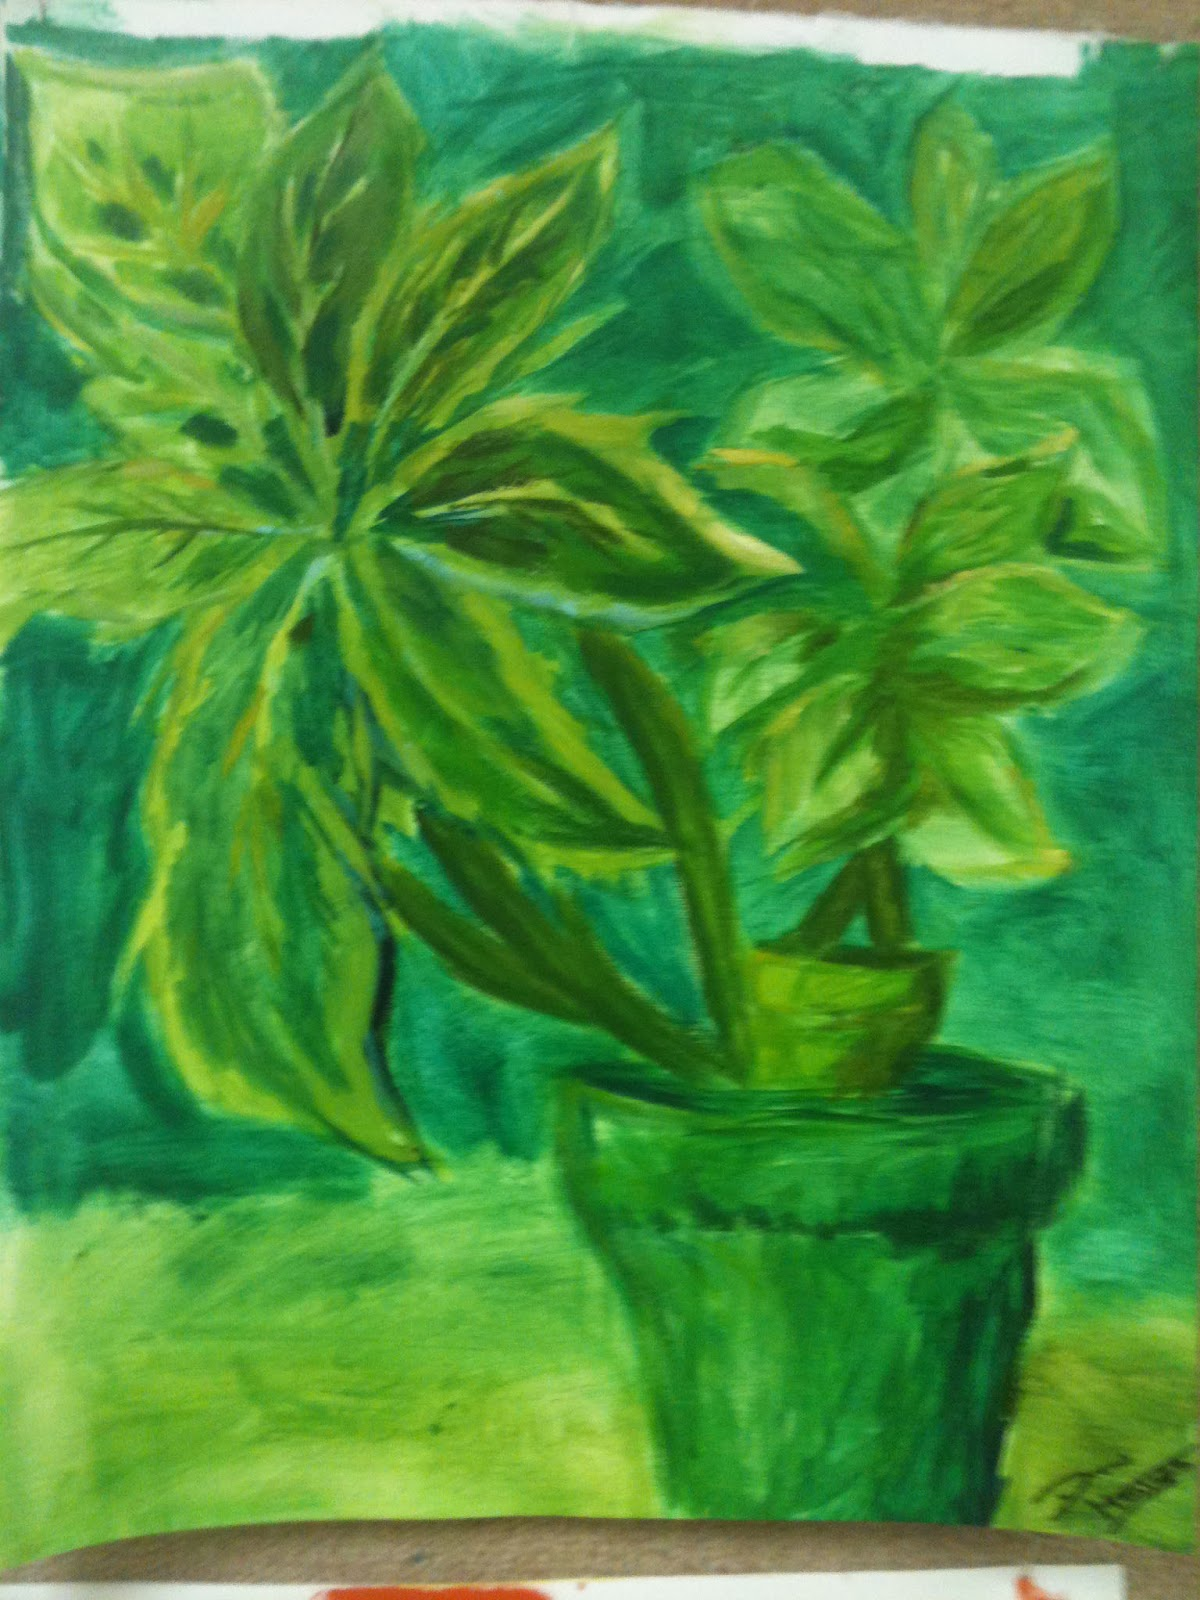 Painting 2 Analogous Color Scheme Still Life